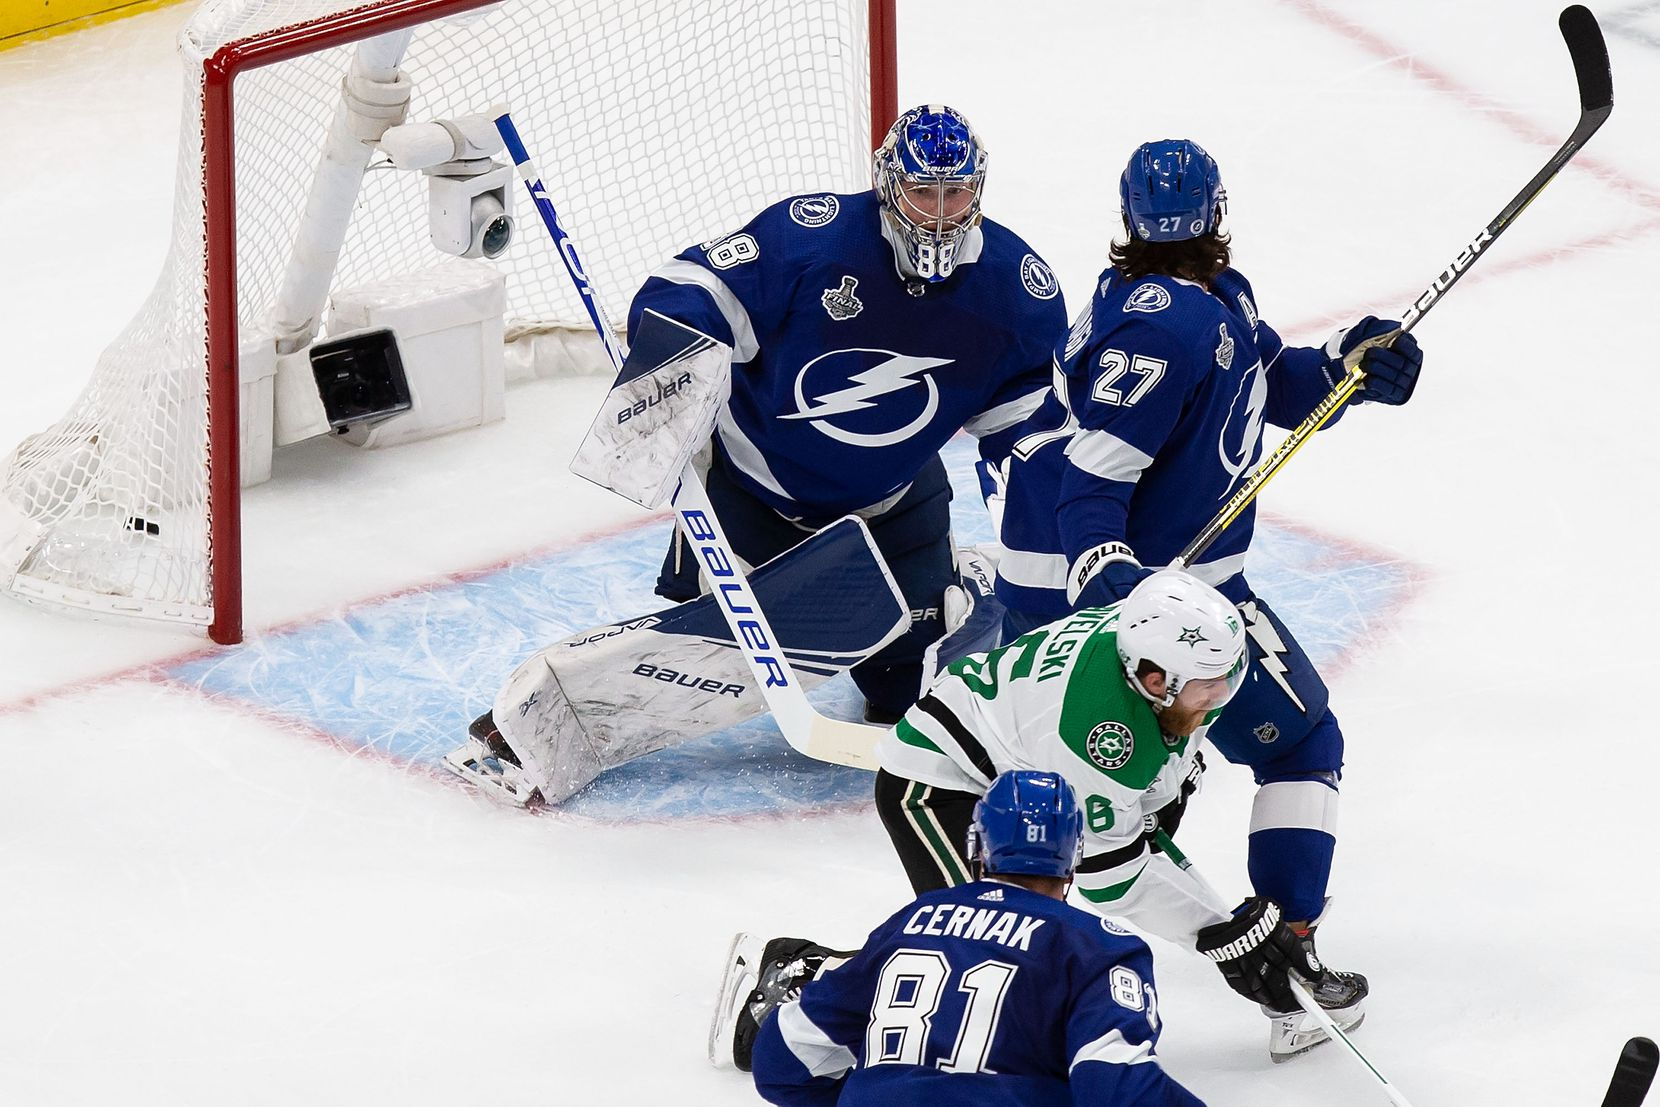 Joe Pavelski (16) of the Dallas Stars scores against goaltender Andrei Vasilevskiy (88) of the Tampa Bay Lightning during Game Two of the Stanley Cup Final at Rogers Place in Edmonton, Alberta, Canada on Monday, September 21, 2020. (Codie McLachlan/Special Contributor)